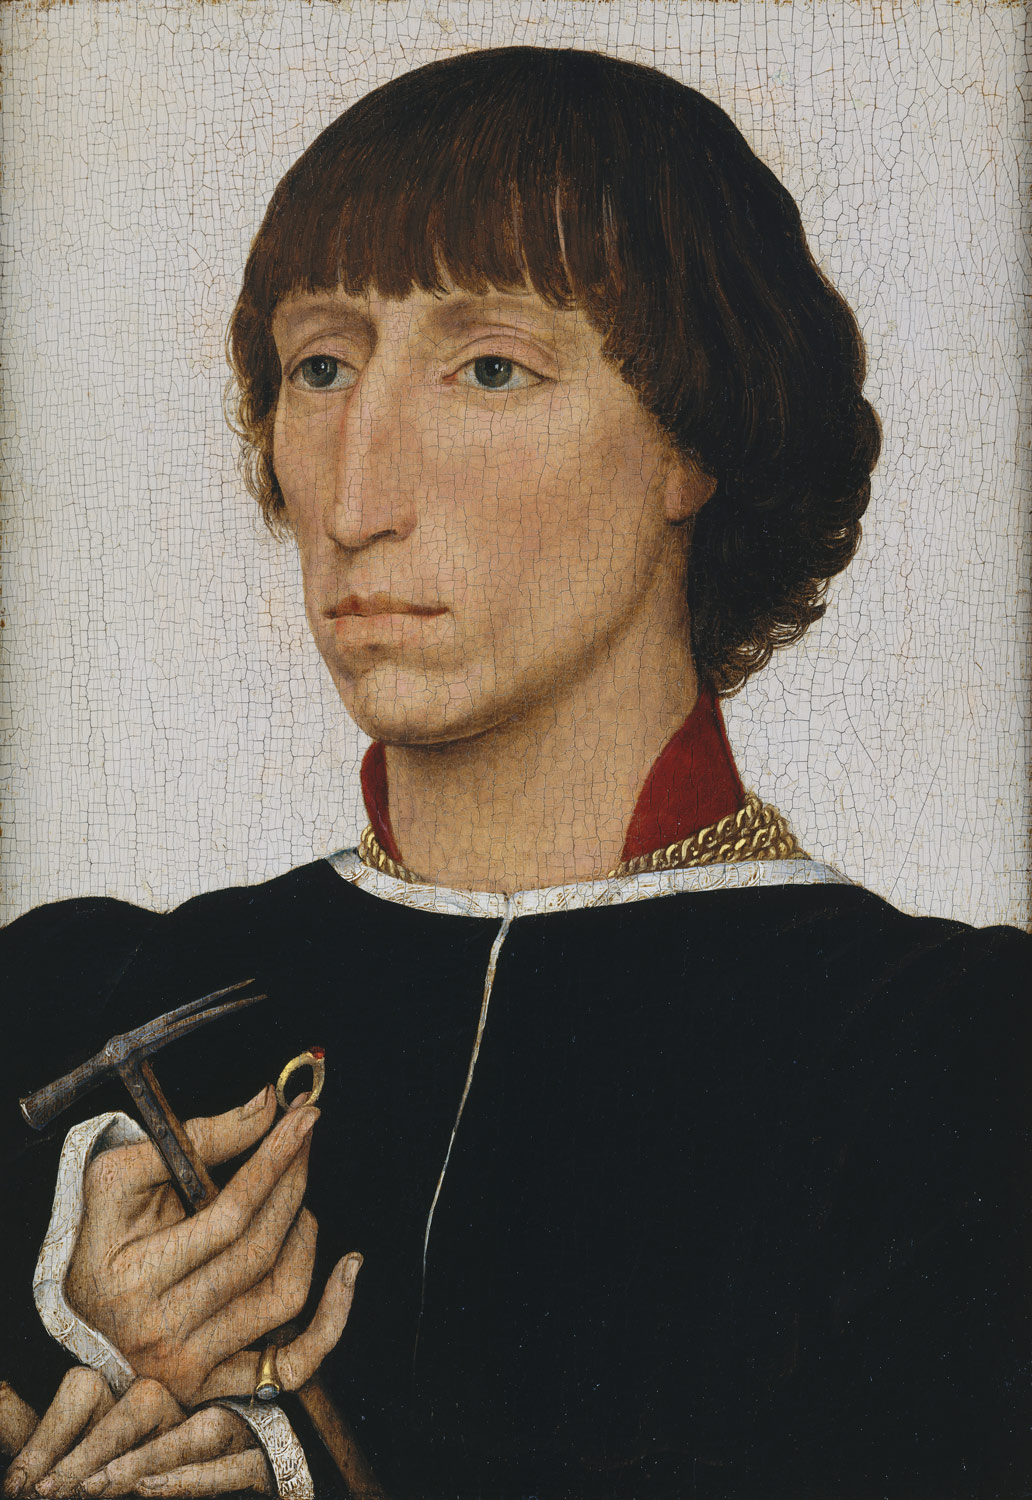 Francesco dEste (born about 1430, died after 1475)